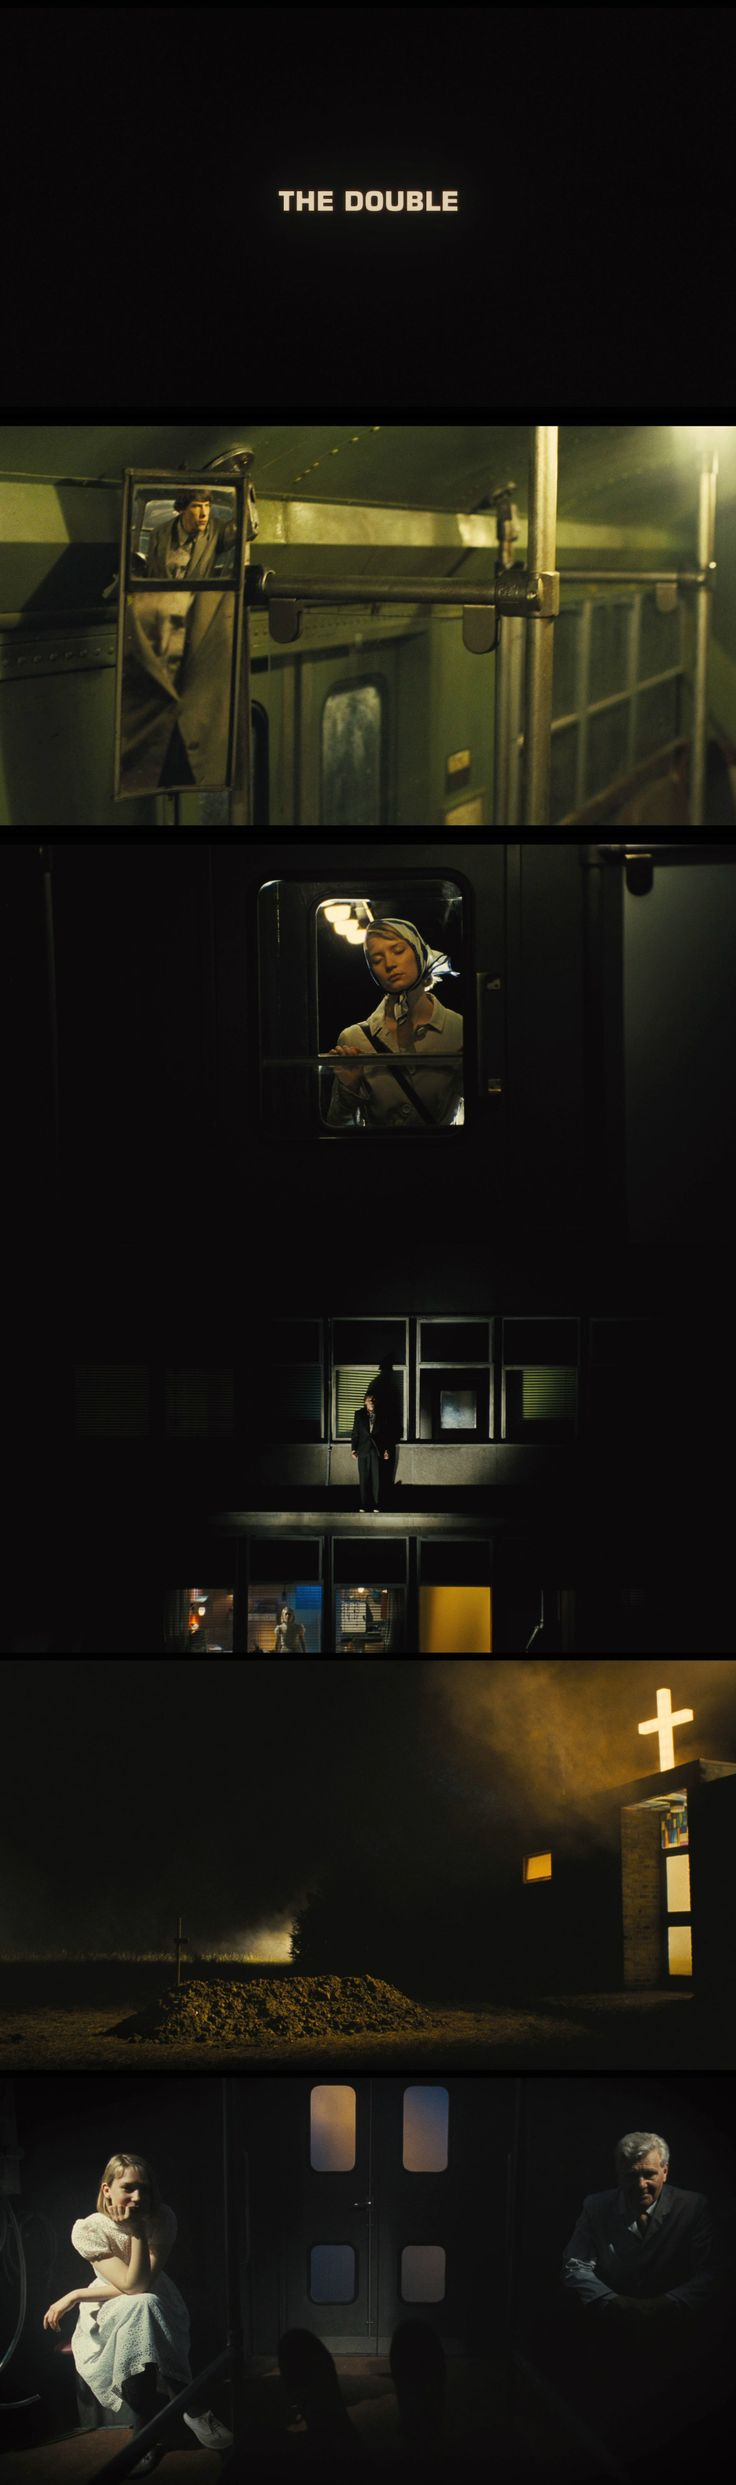 The Double (2013)  Directed by: Richard Ayoade Cinematography: Erik Wilson